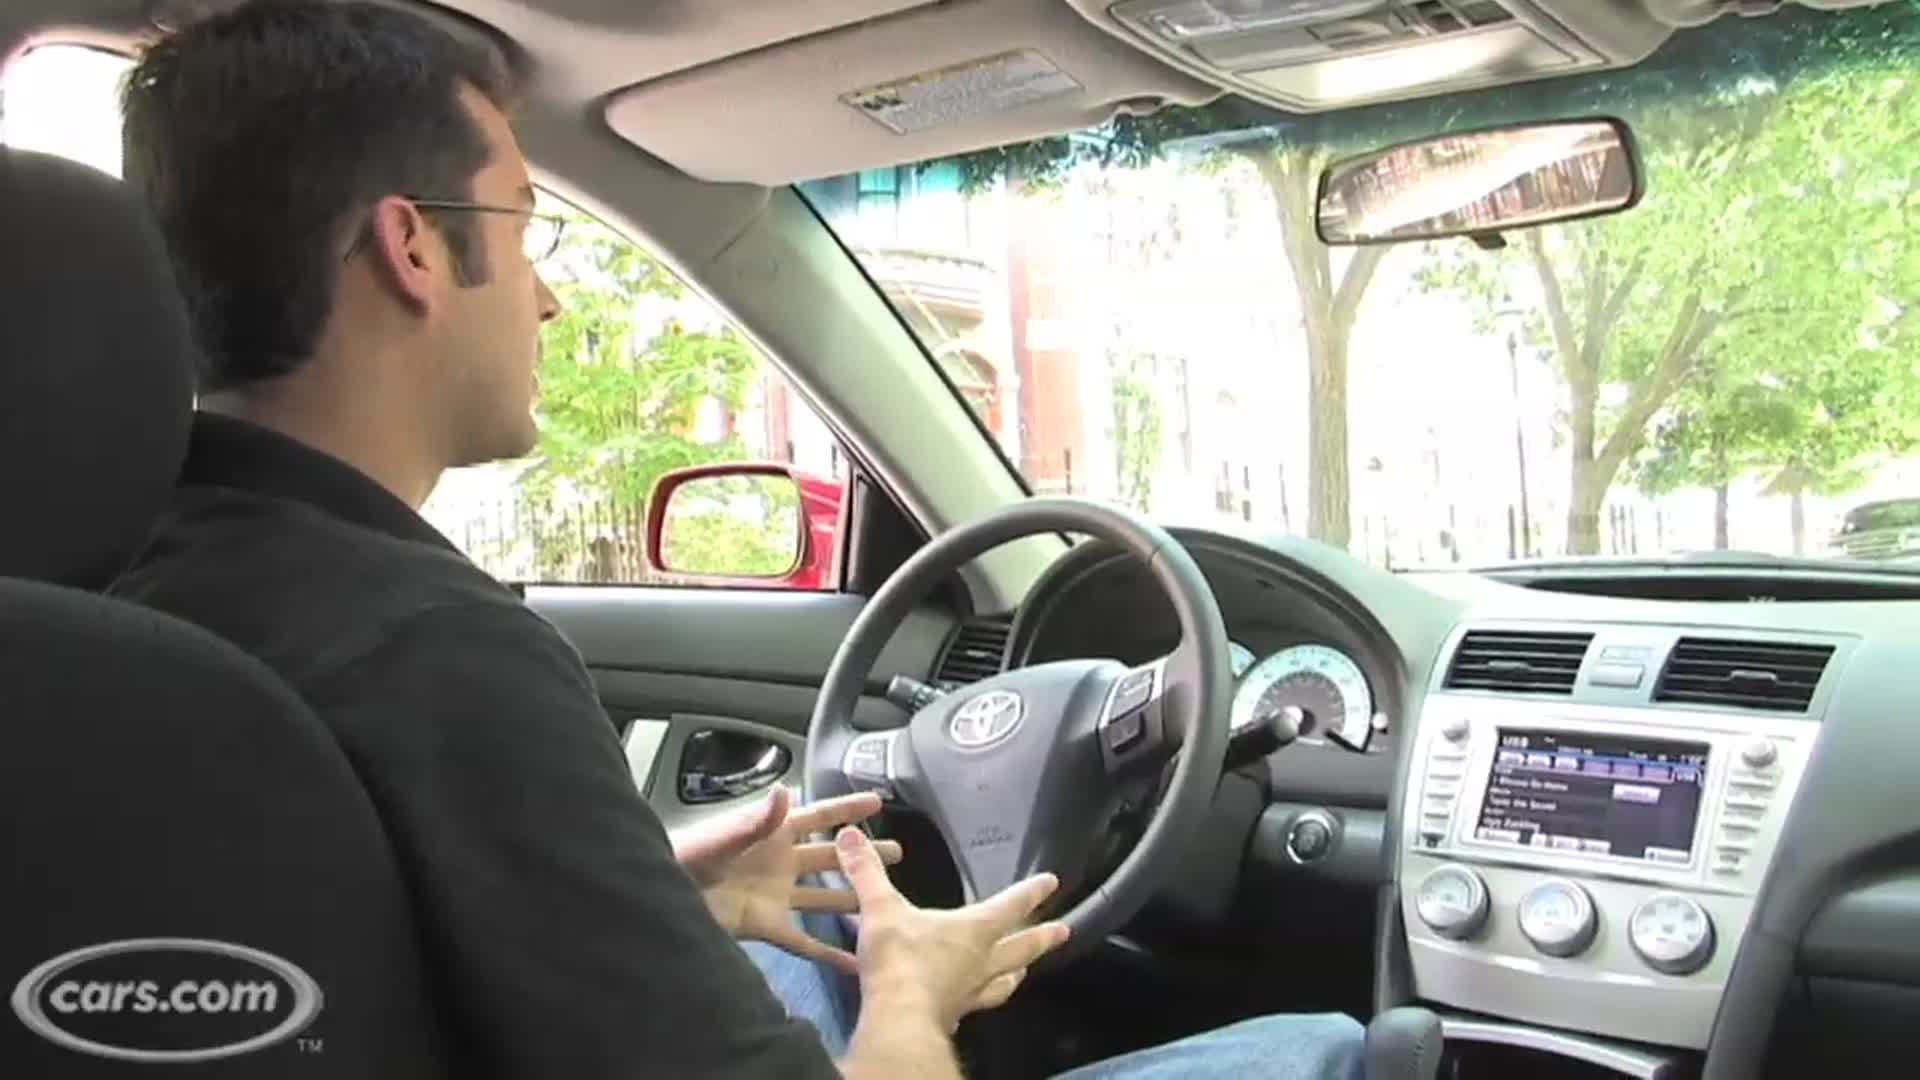 Toyota Sienna 2010-2018 Owners Manual: Openingclosing the back door from inside the vehicle (vehicleswith power back door)